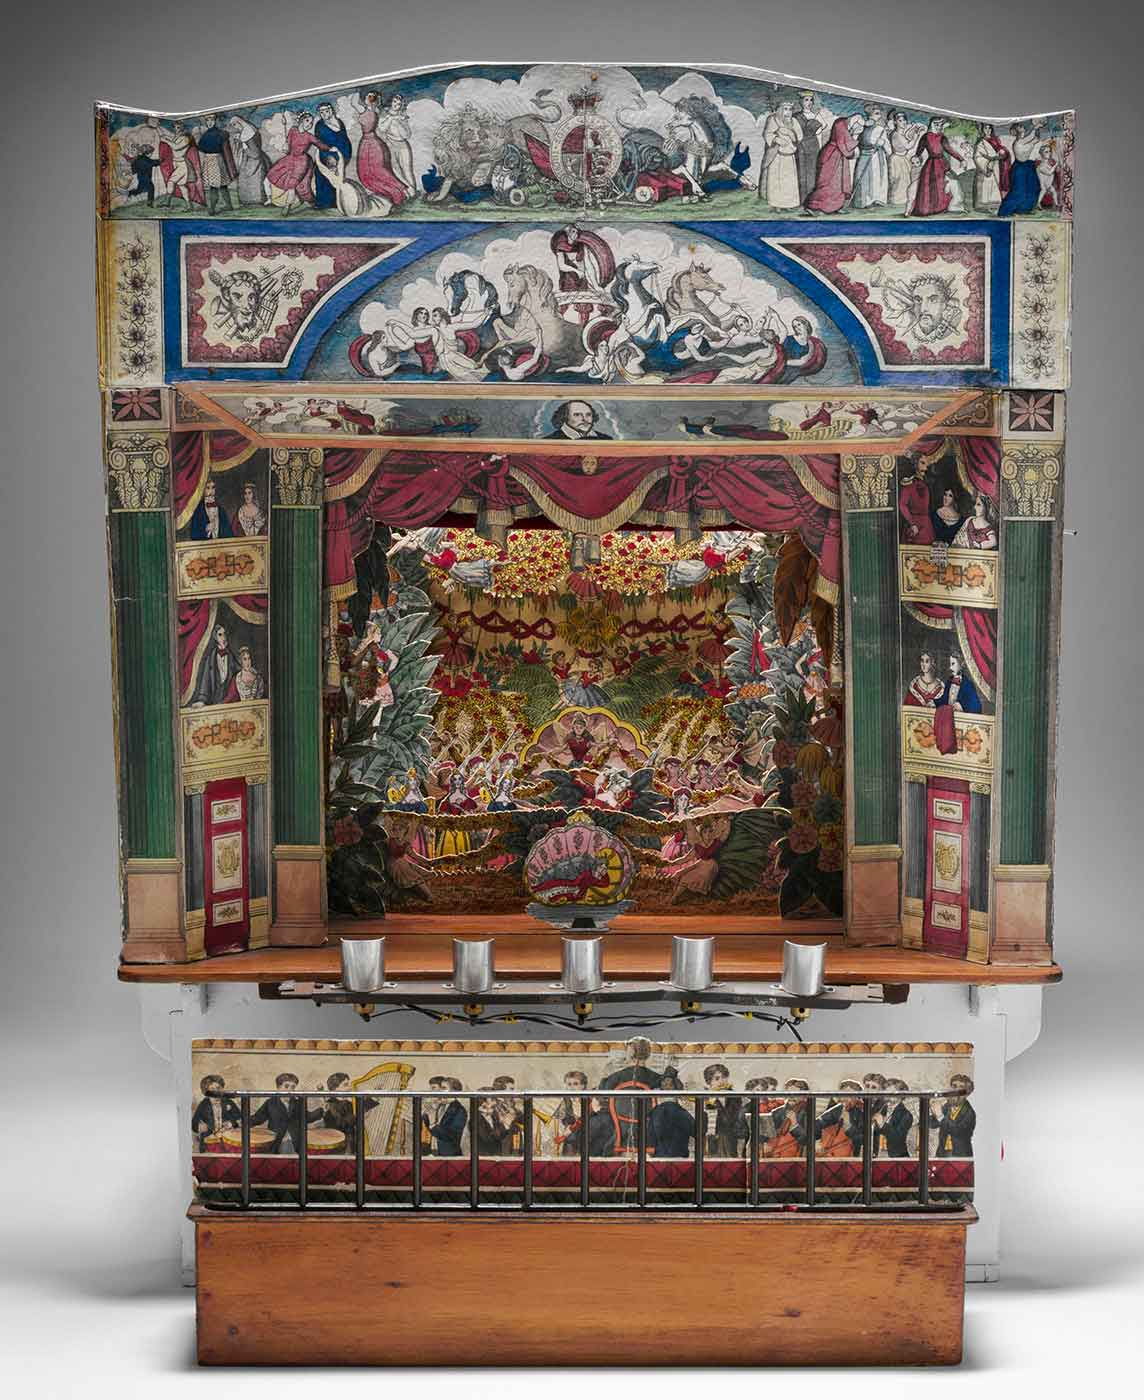 Front view of a brightly coloured toy stage, with cardboard sets and characters, and row of silver candle holders below. - click to view larger image